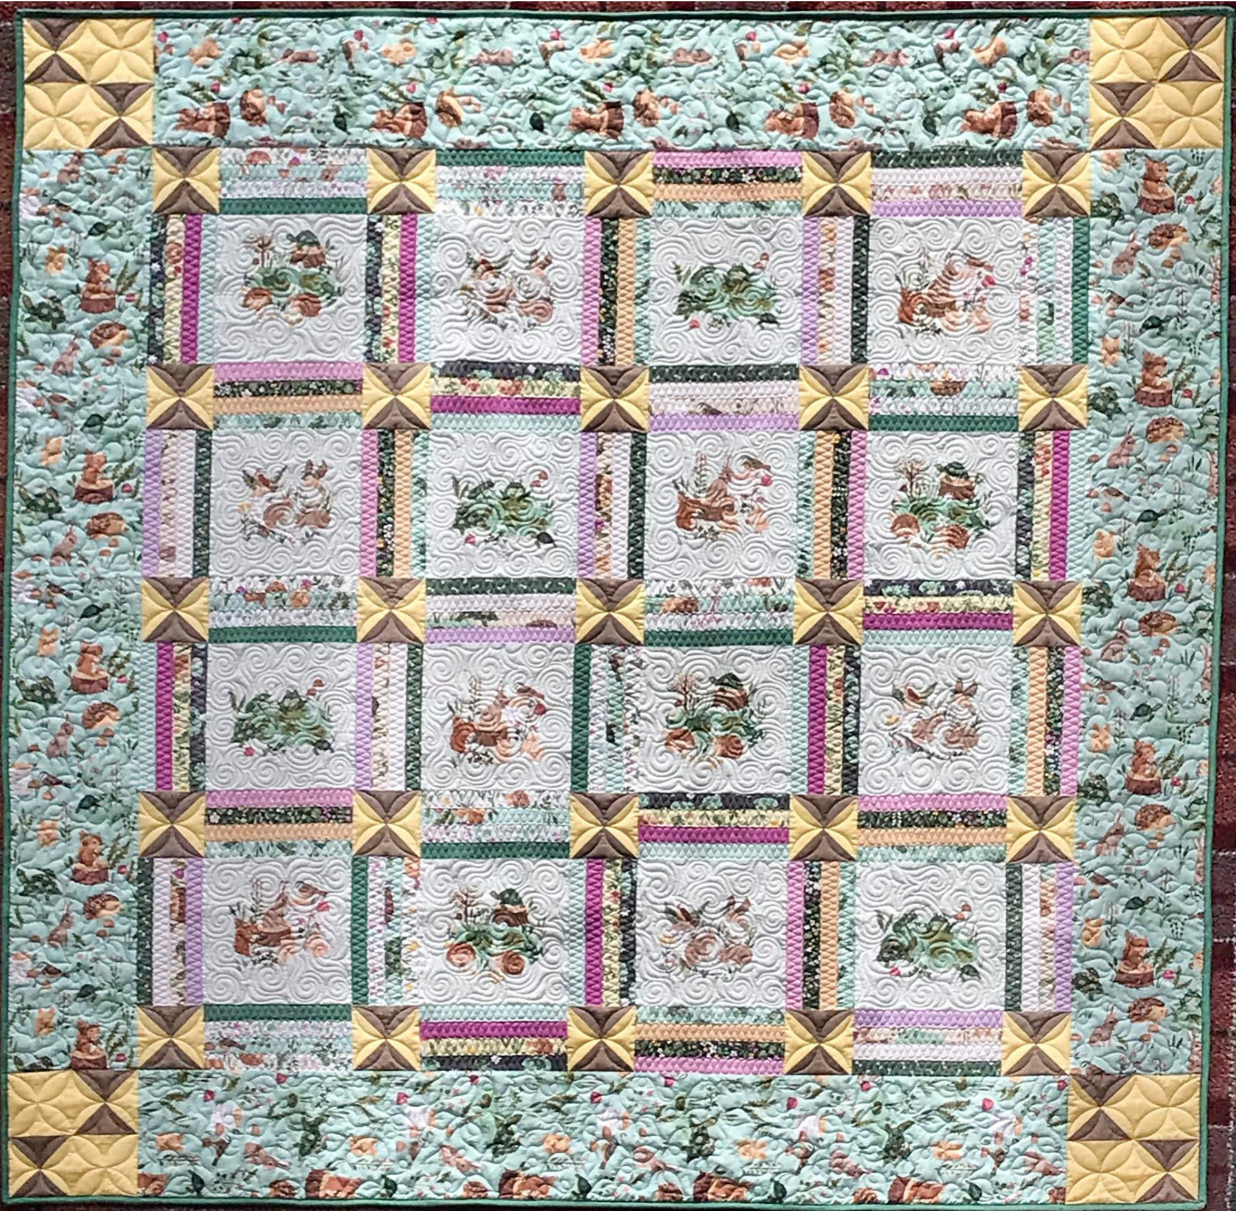 Quilt Basket Picnic Patch Clothworks Quilt Kit